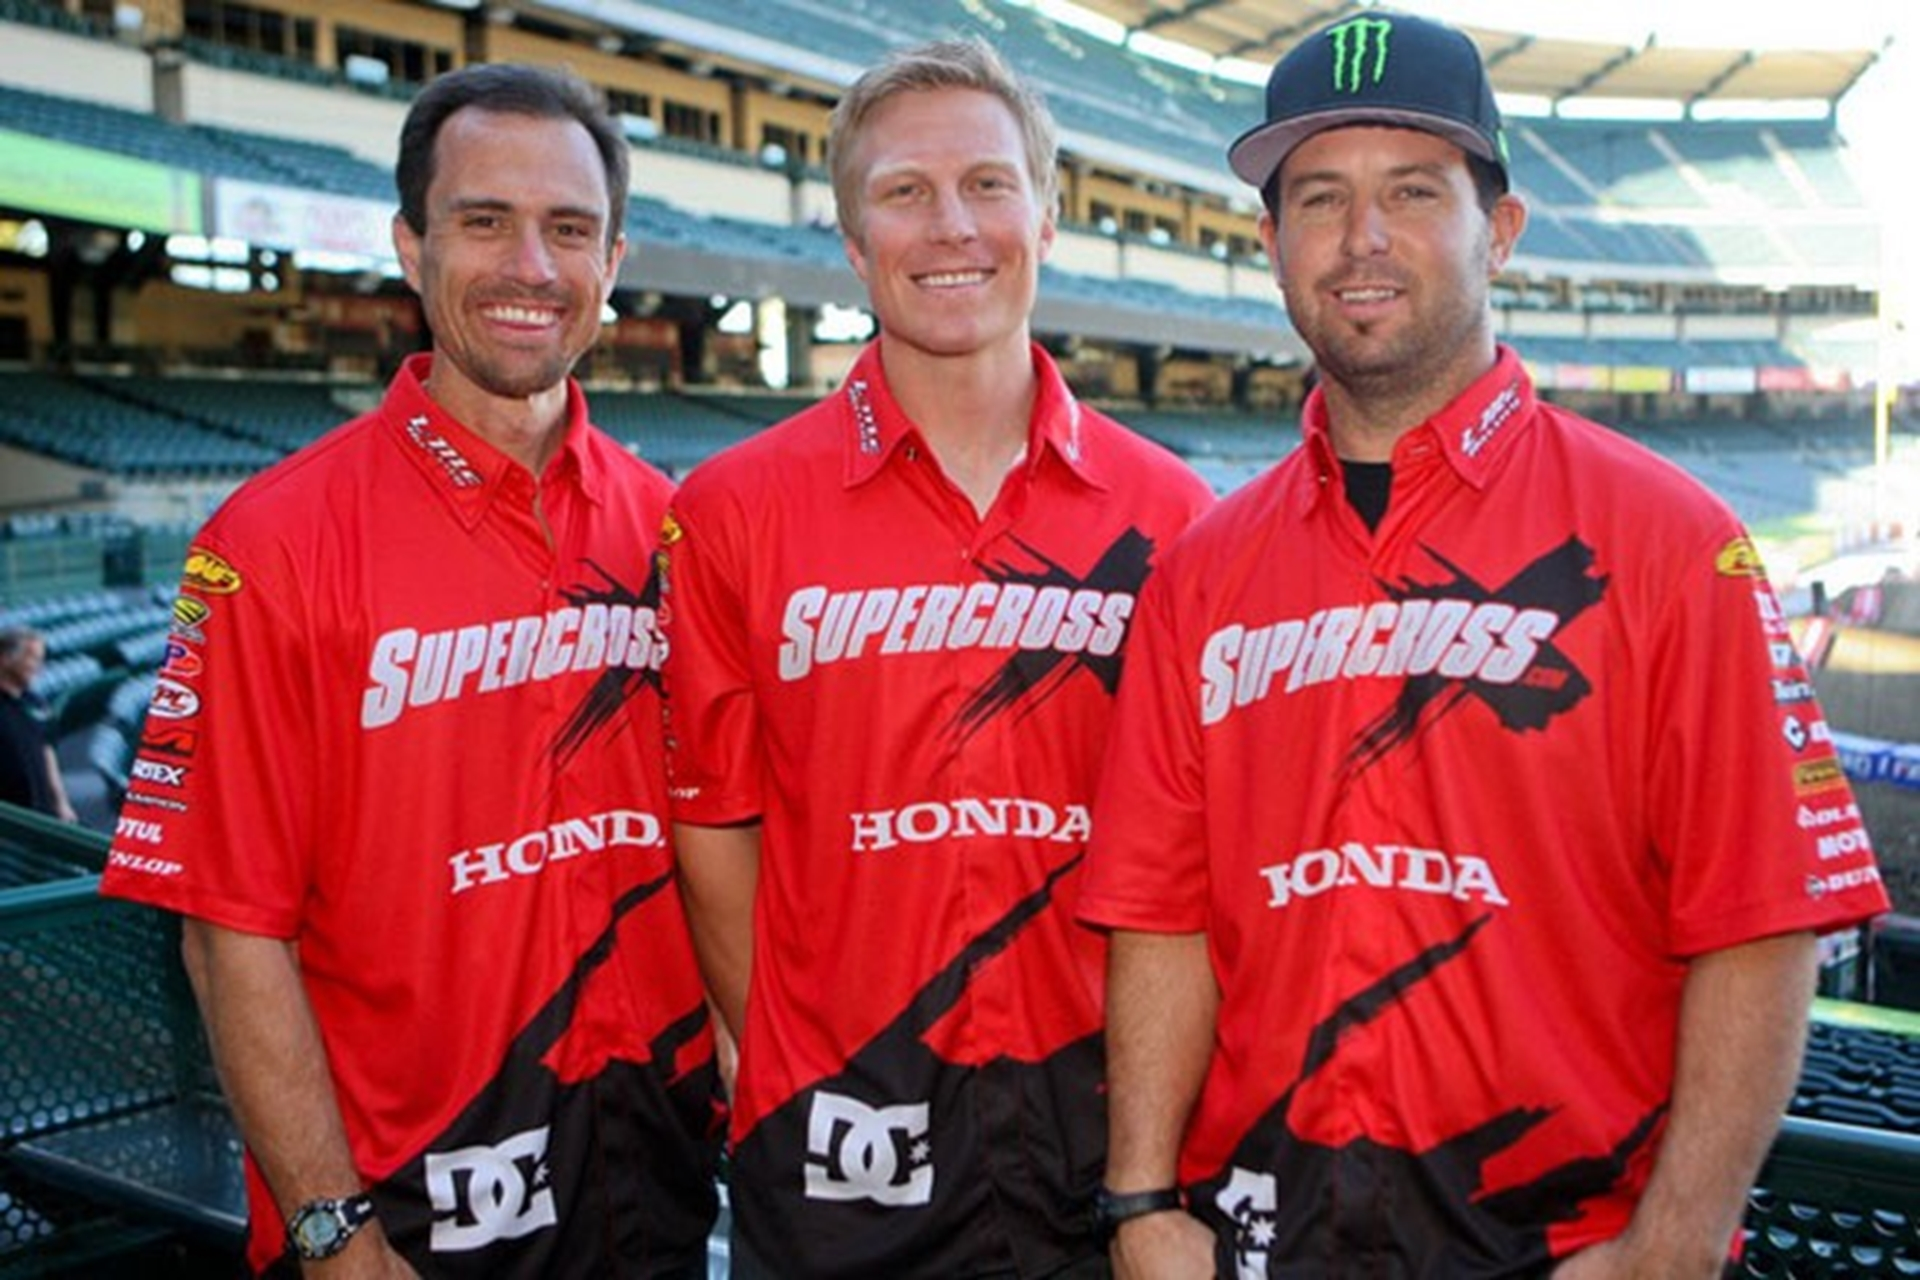 DC McGrath Supercross team